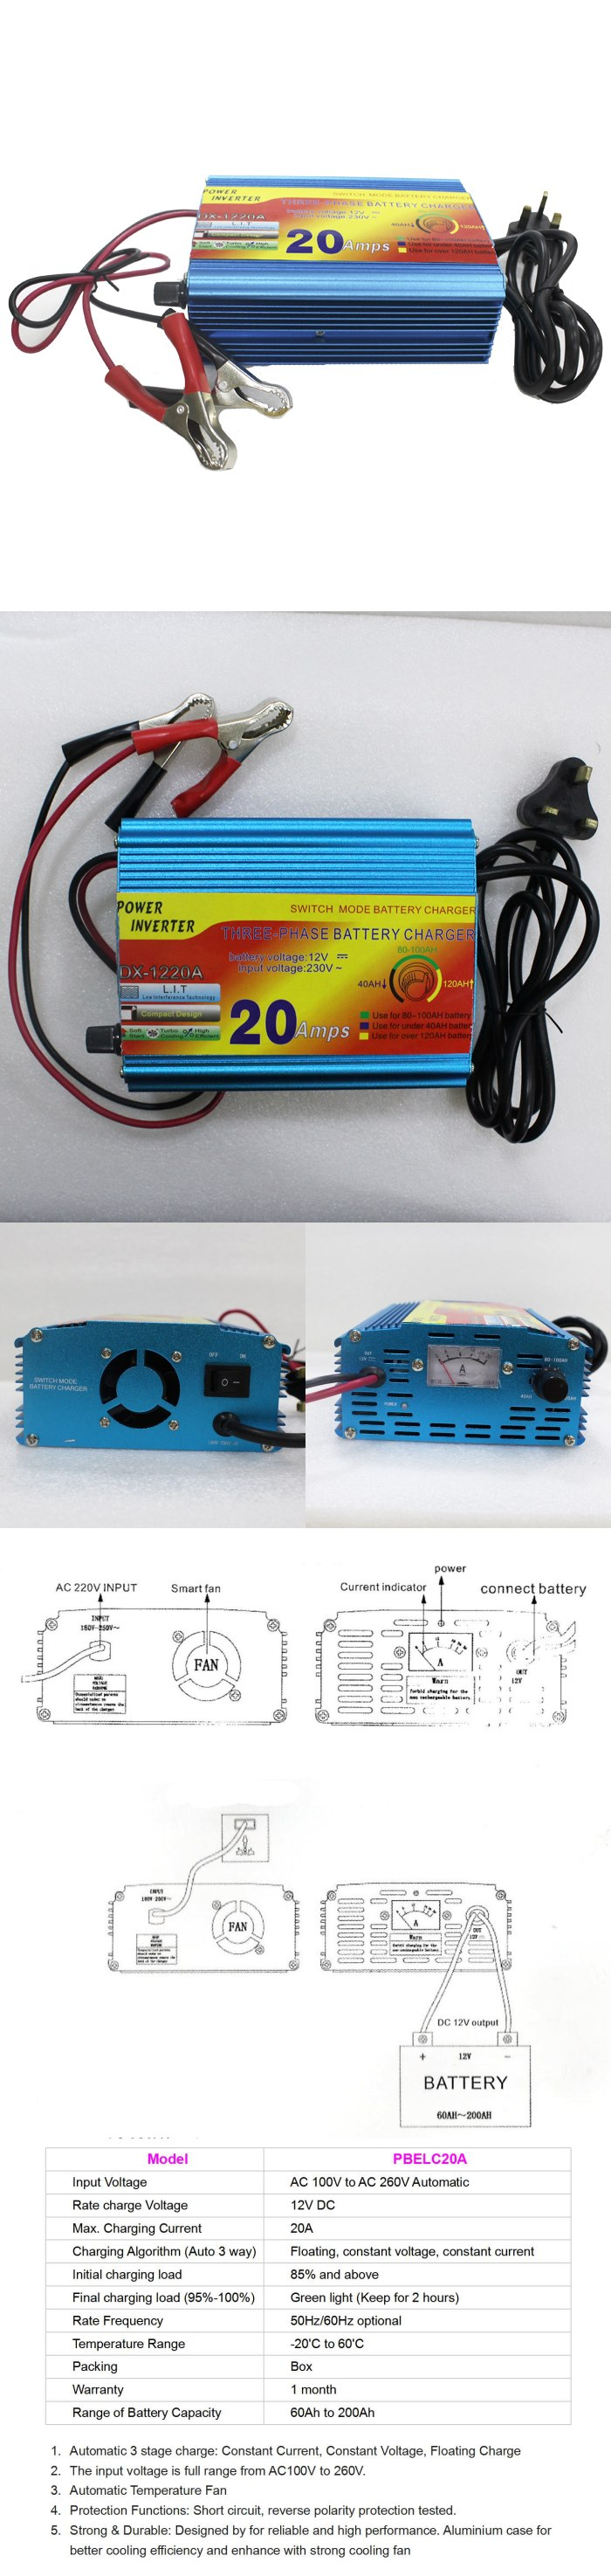 20A 12V Auto Battery Charger for Lead Acid Battery / Gel Battery 60Ah 65Ah  100Ah 150Ah 200Ah | PrestoMall - Batteries